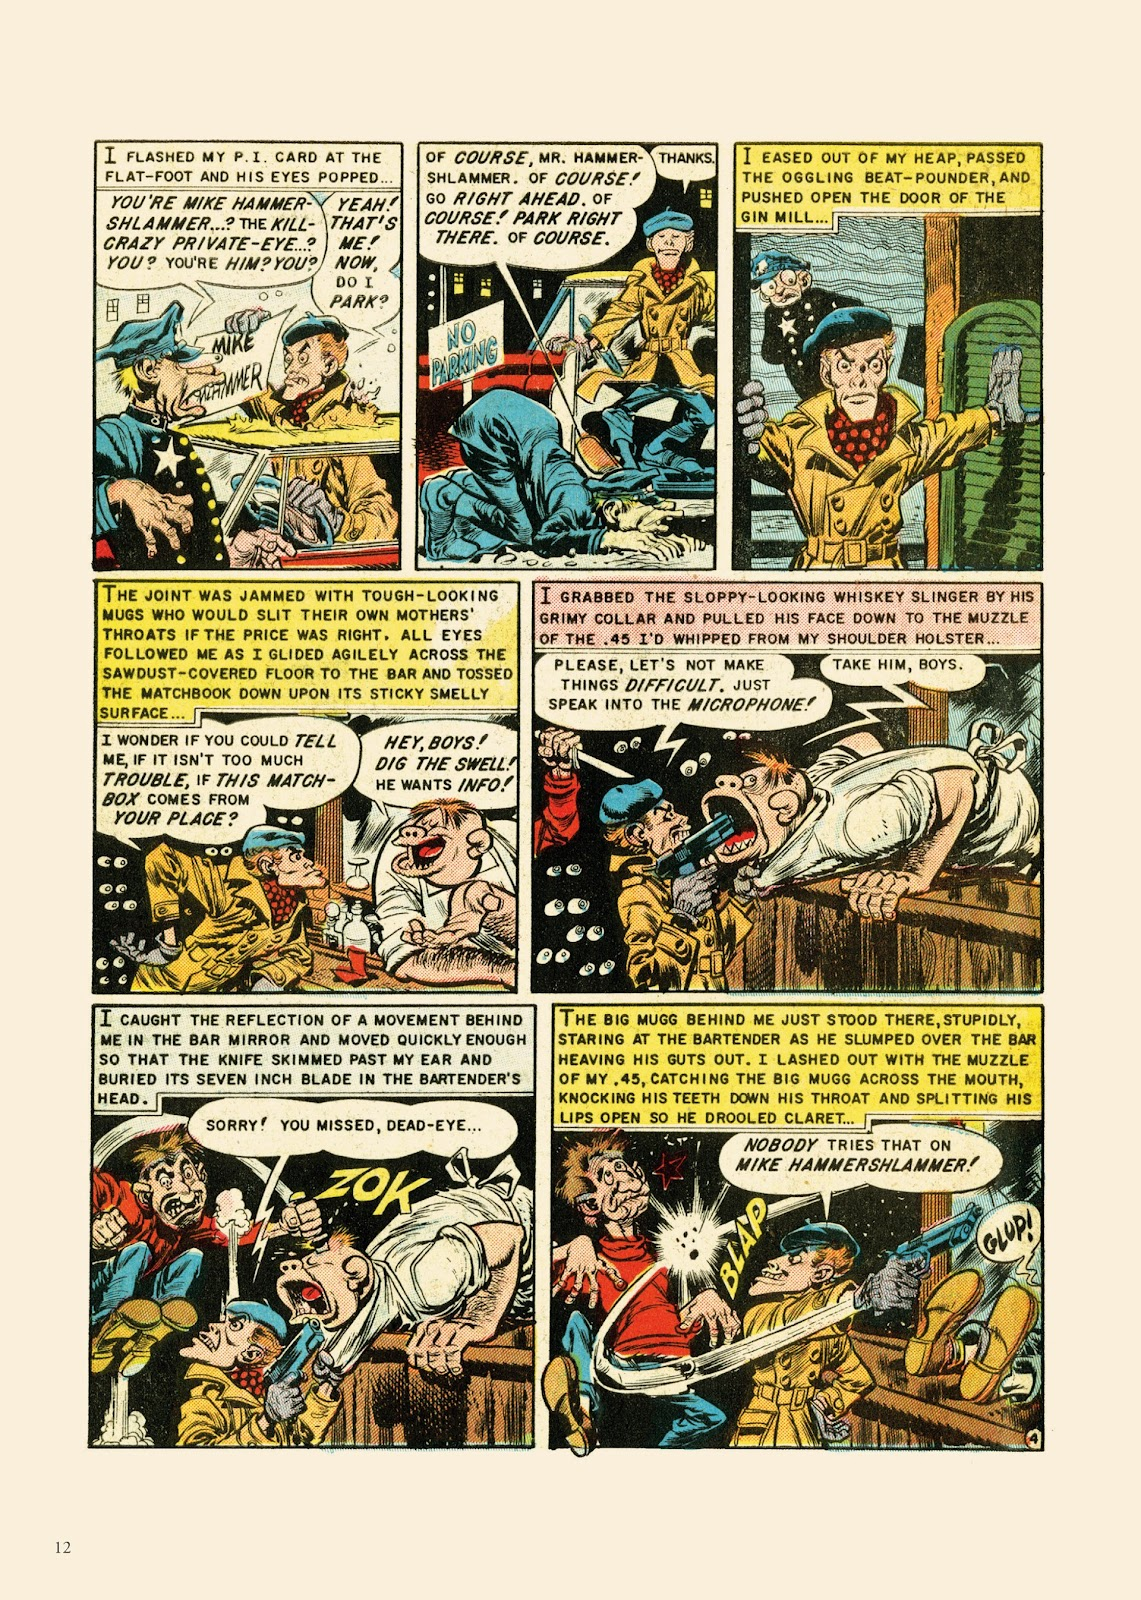 Read online Sincerest Form of Parody: The Best 1950s MAD-Inspired Satirical Comics comic -  Issue # TPB (Part 1) - 13